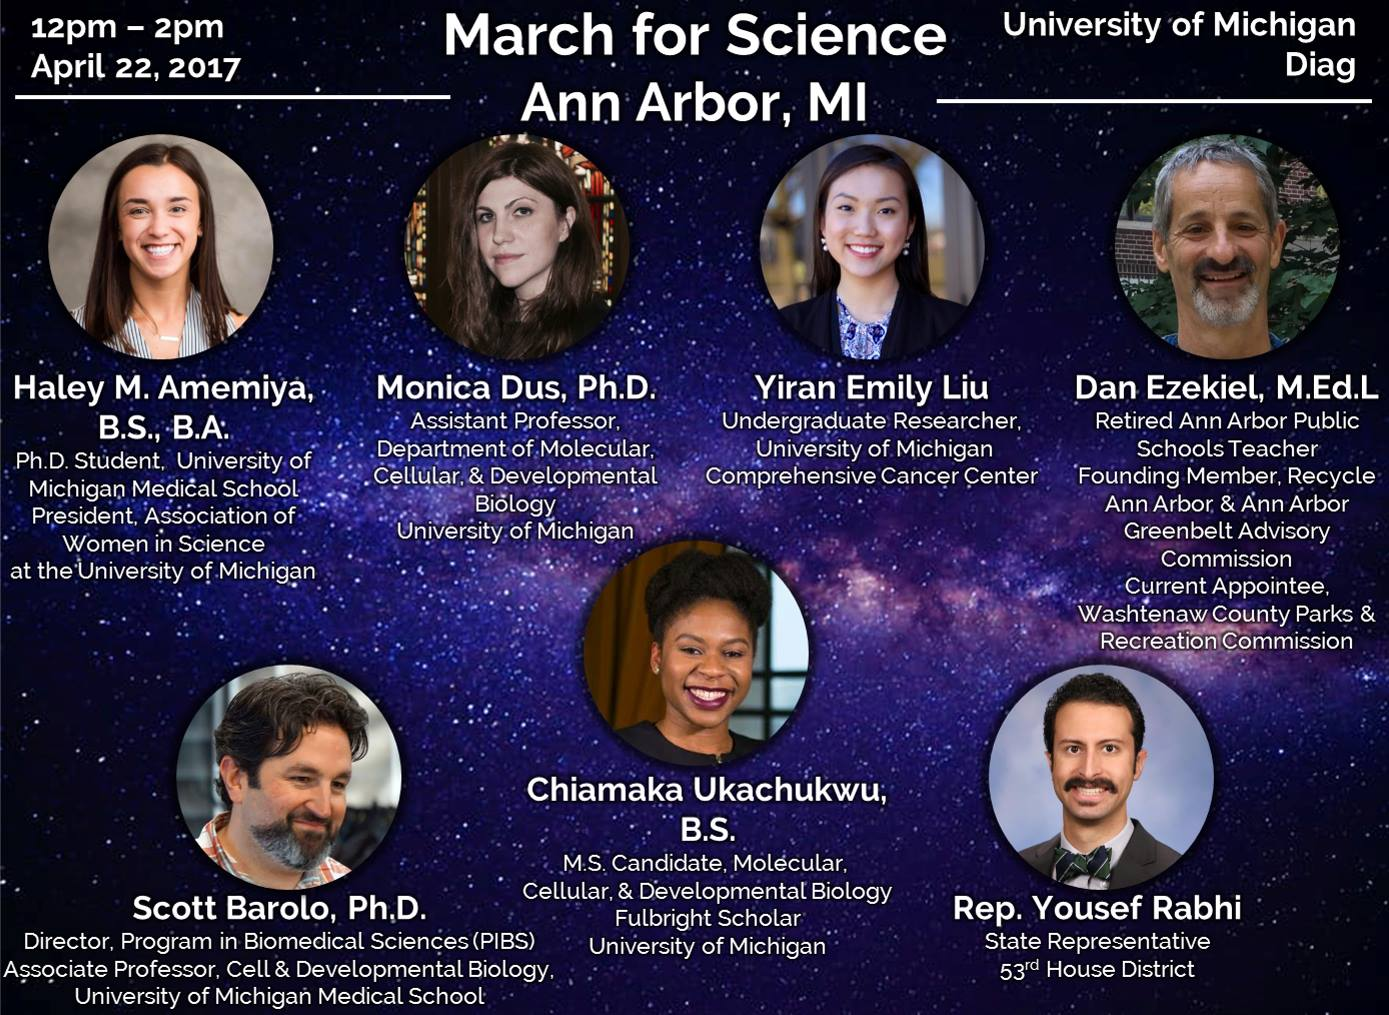 Speakers for March for Science